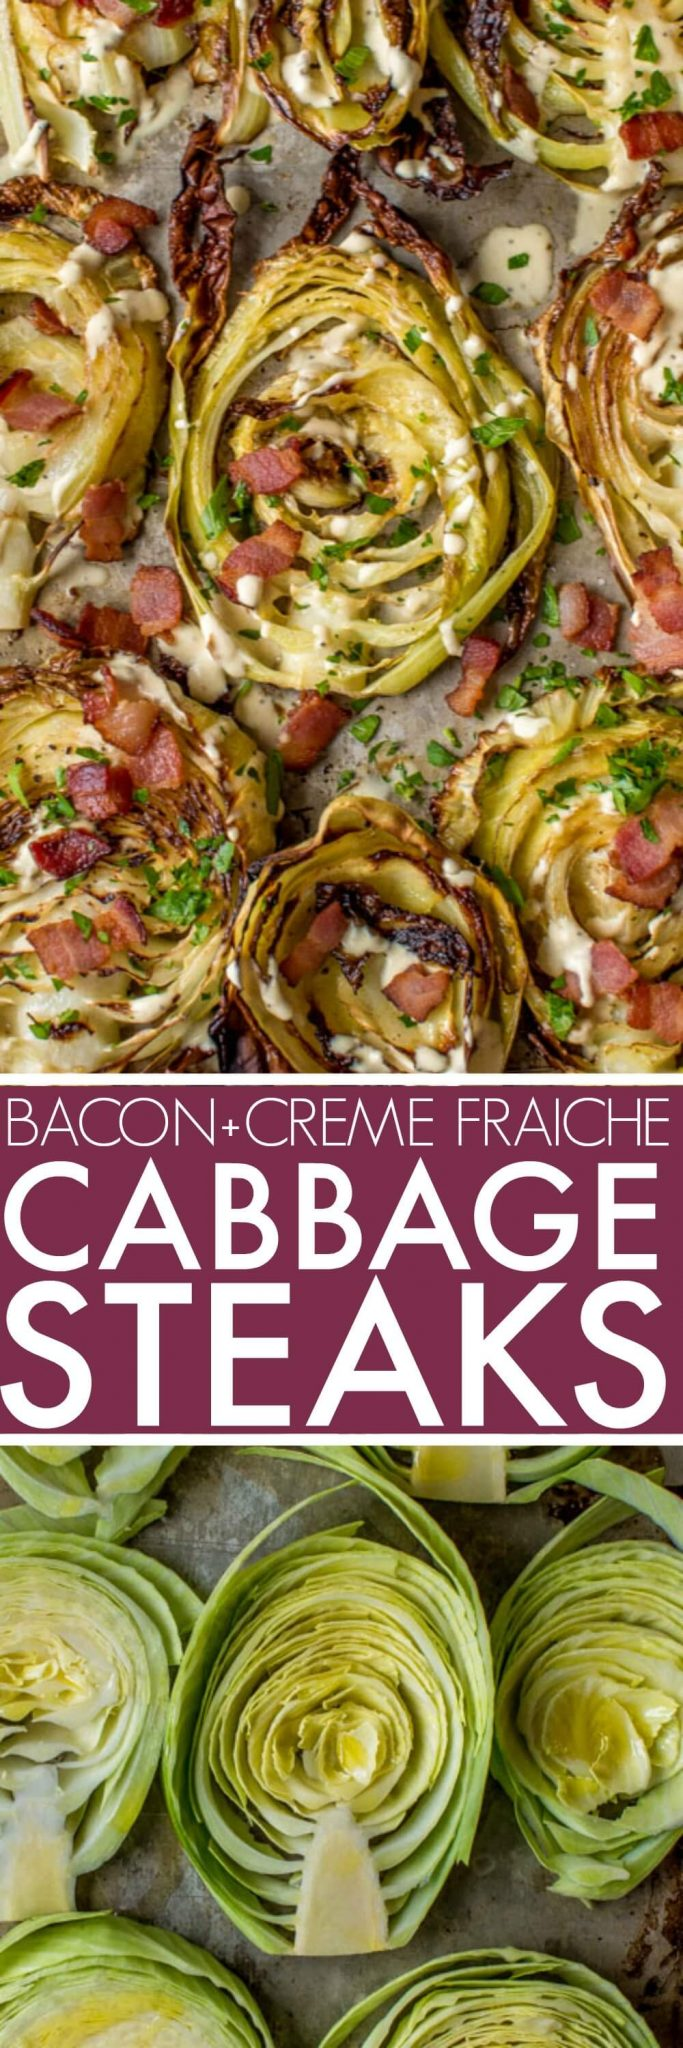 Roasted Cabbage Steaks topped with bacon & garlicky creme fraiche.